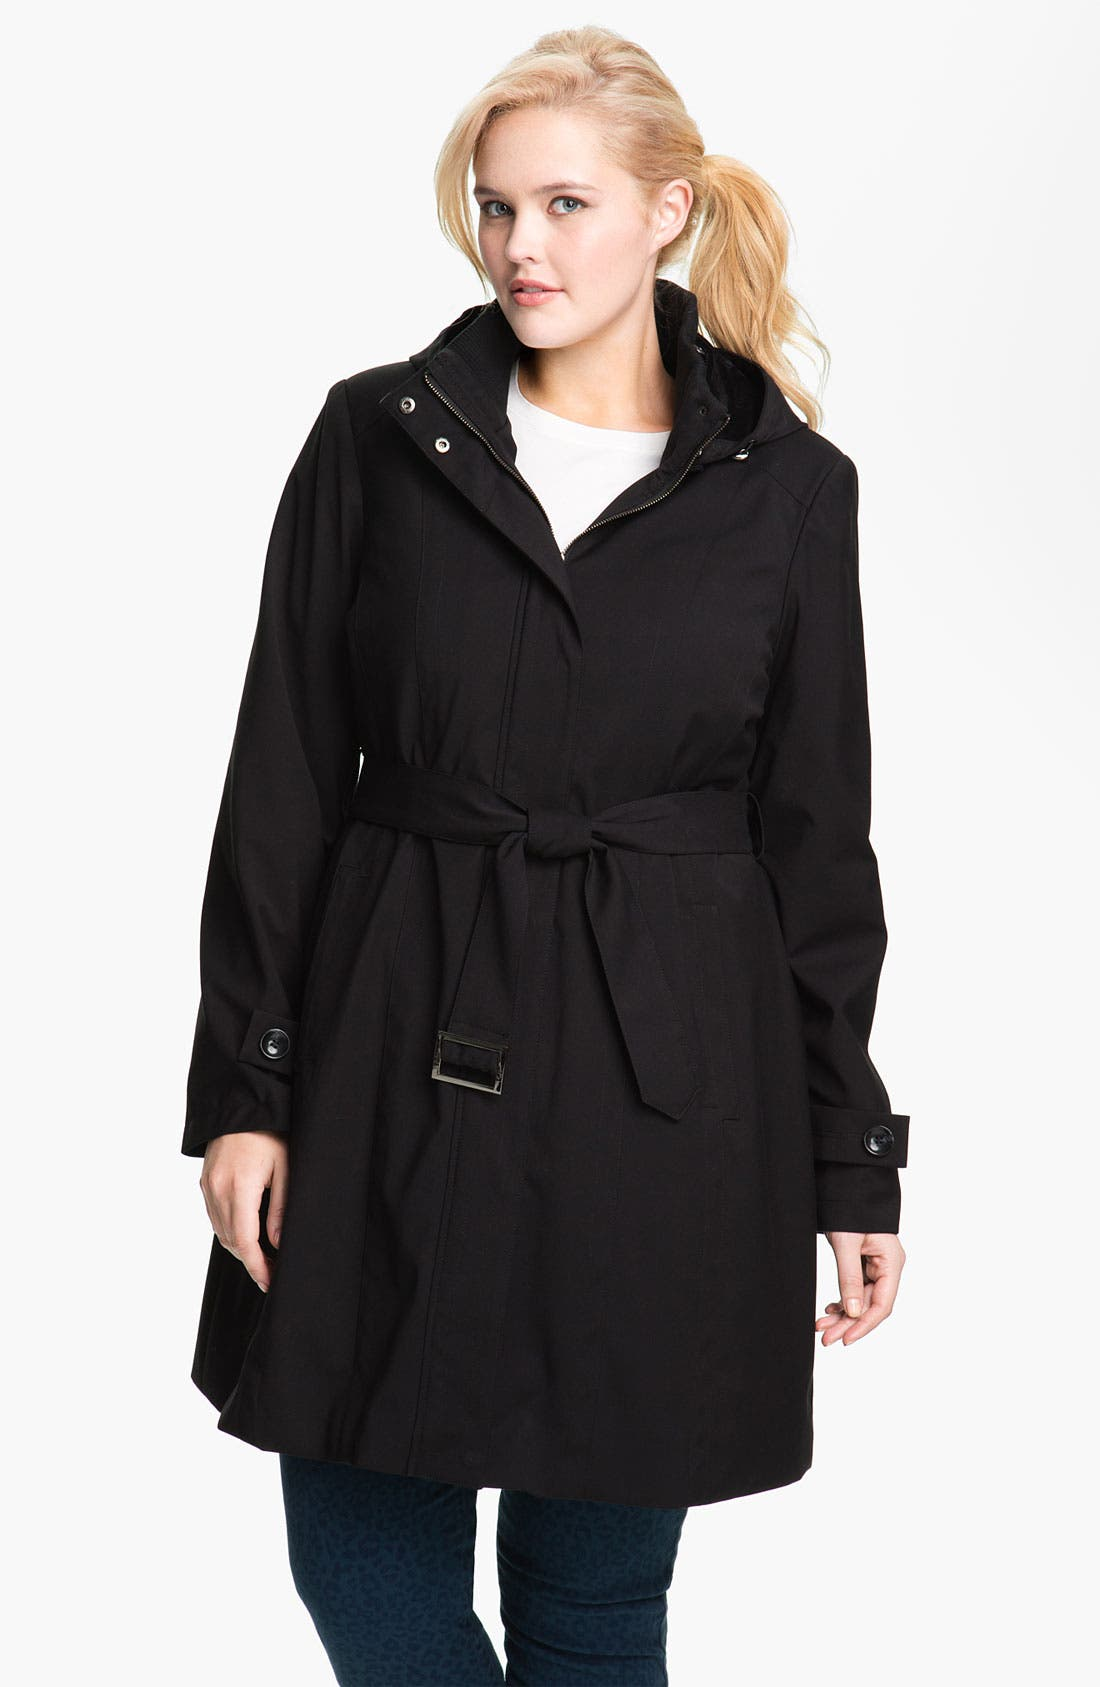 Alternate Image 1 Selected - Kristen Blake Raincoat with Detachable Hood (Plus)